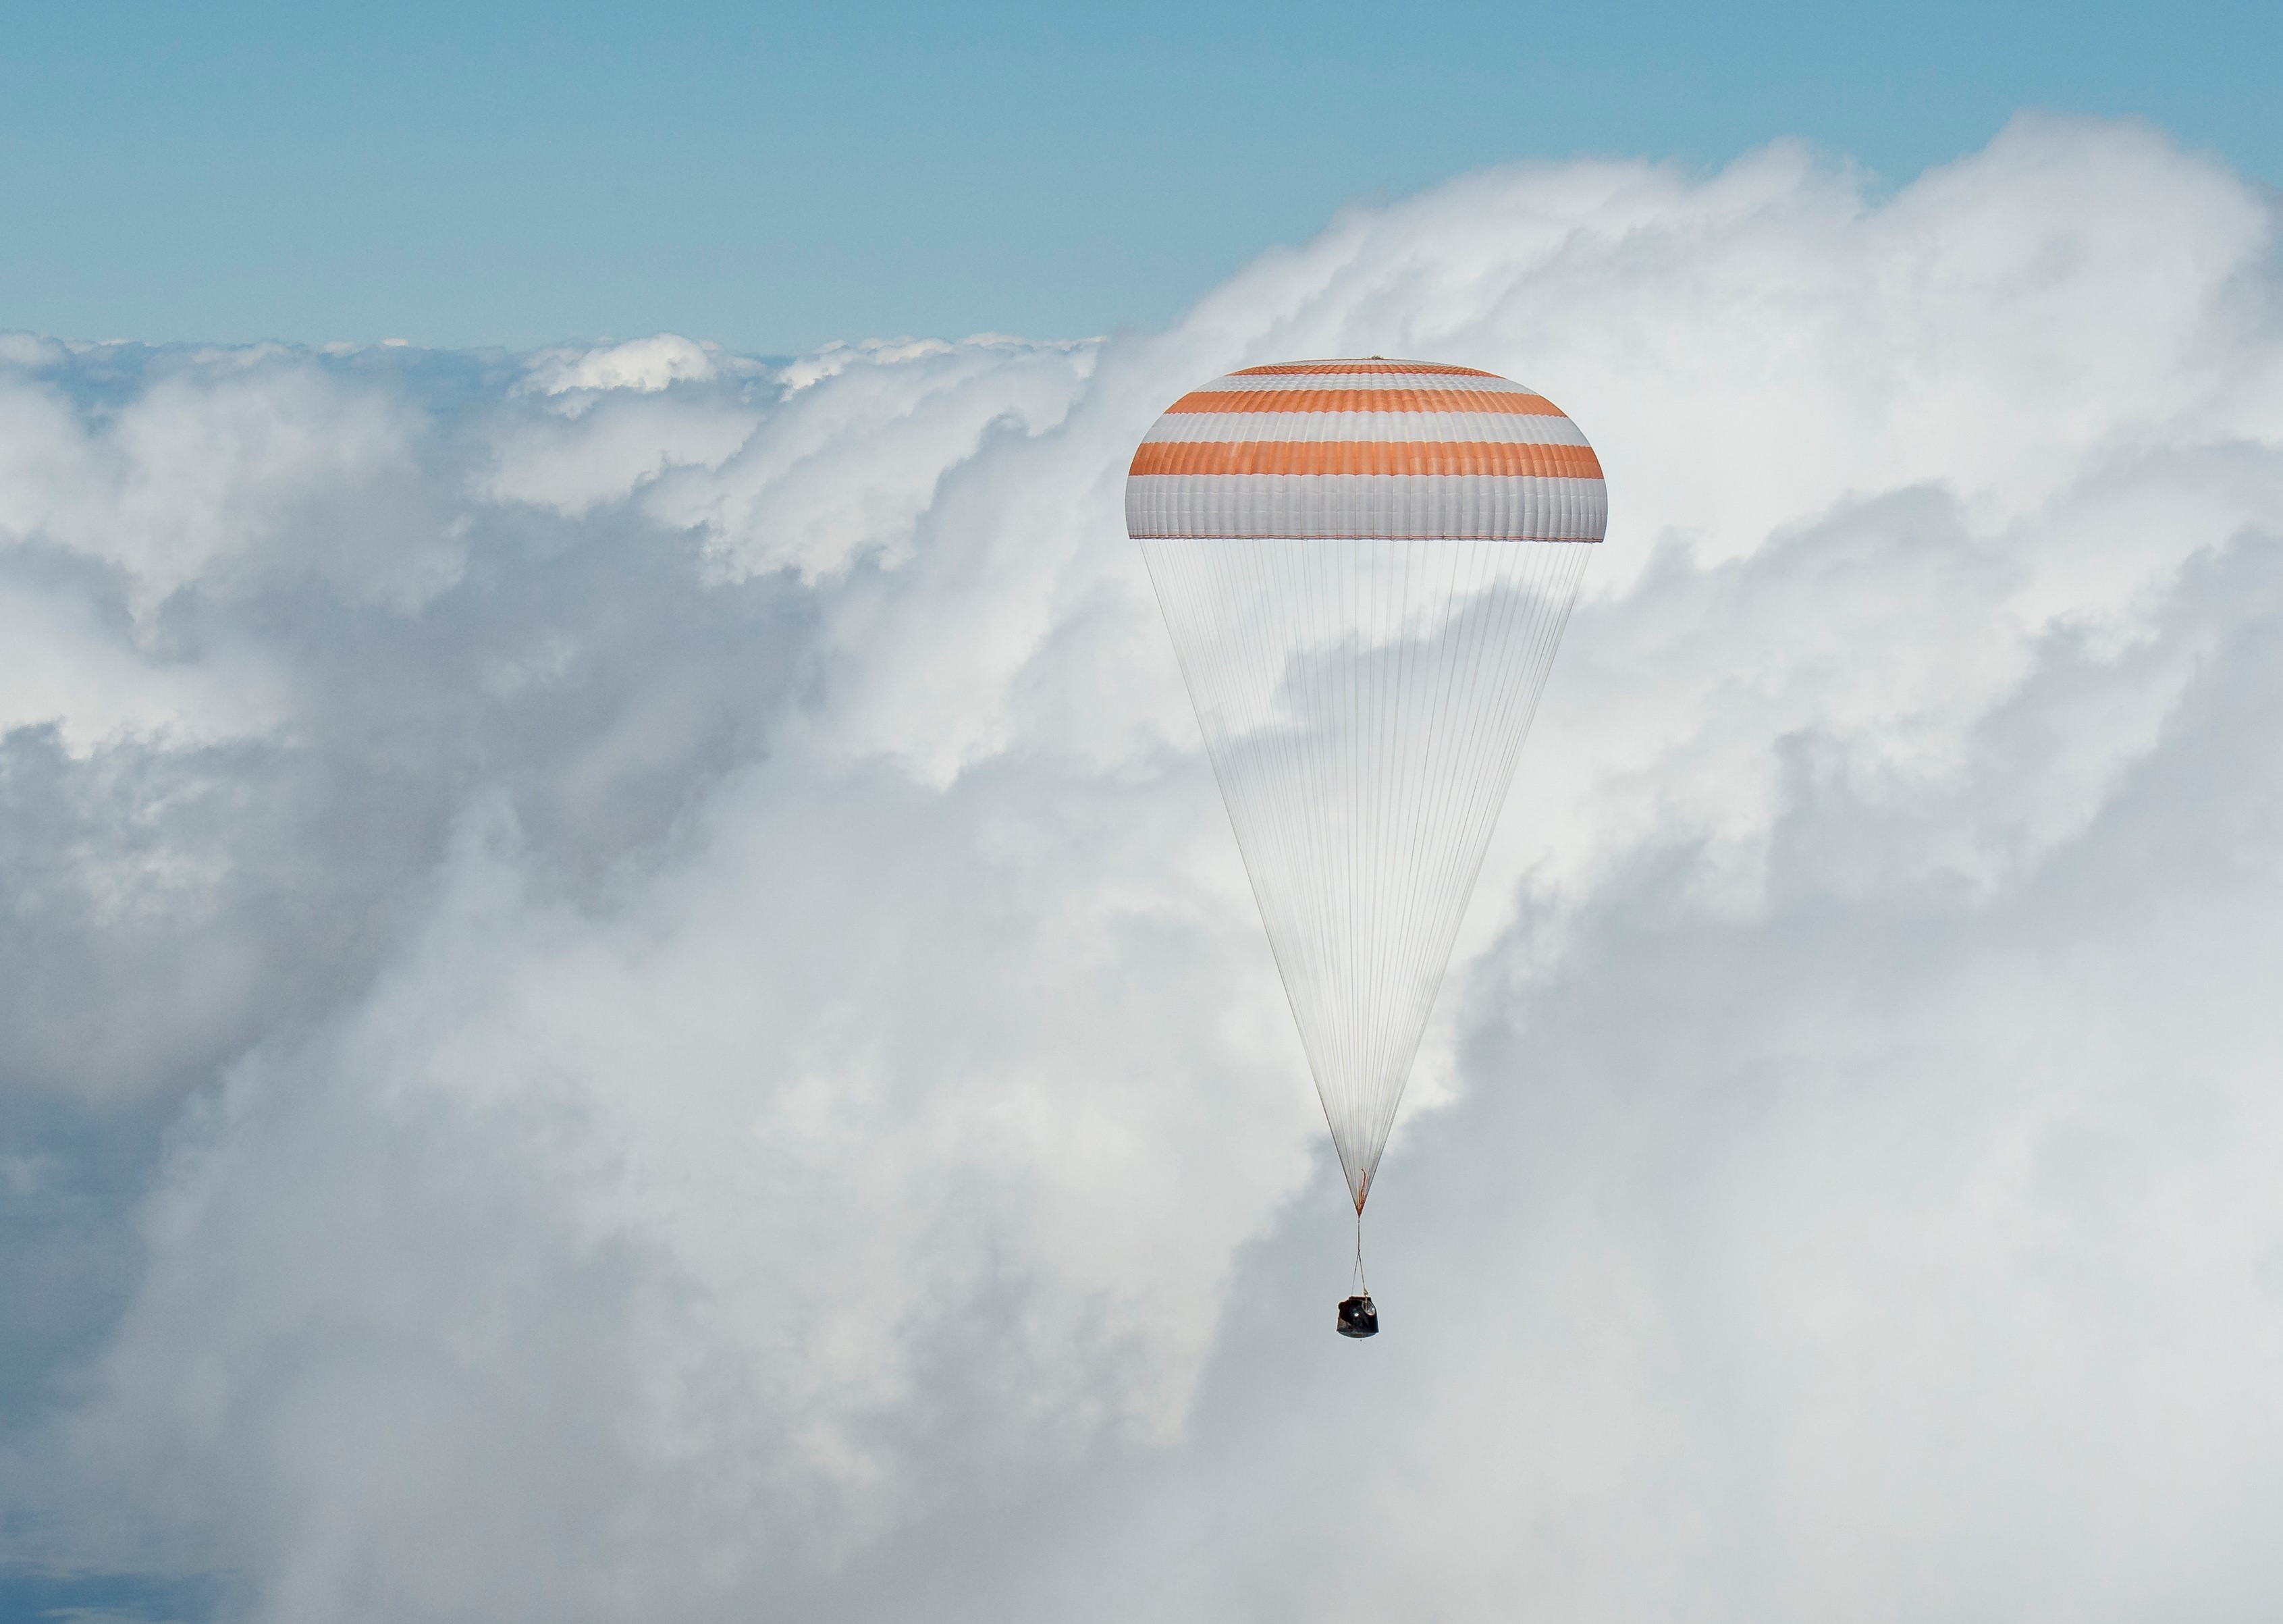 Soyuz TMA-19M Space Capsule Under Parachutes